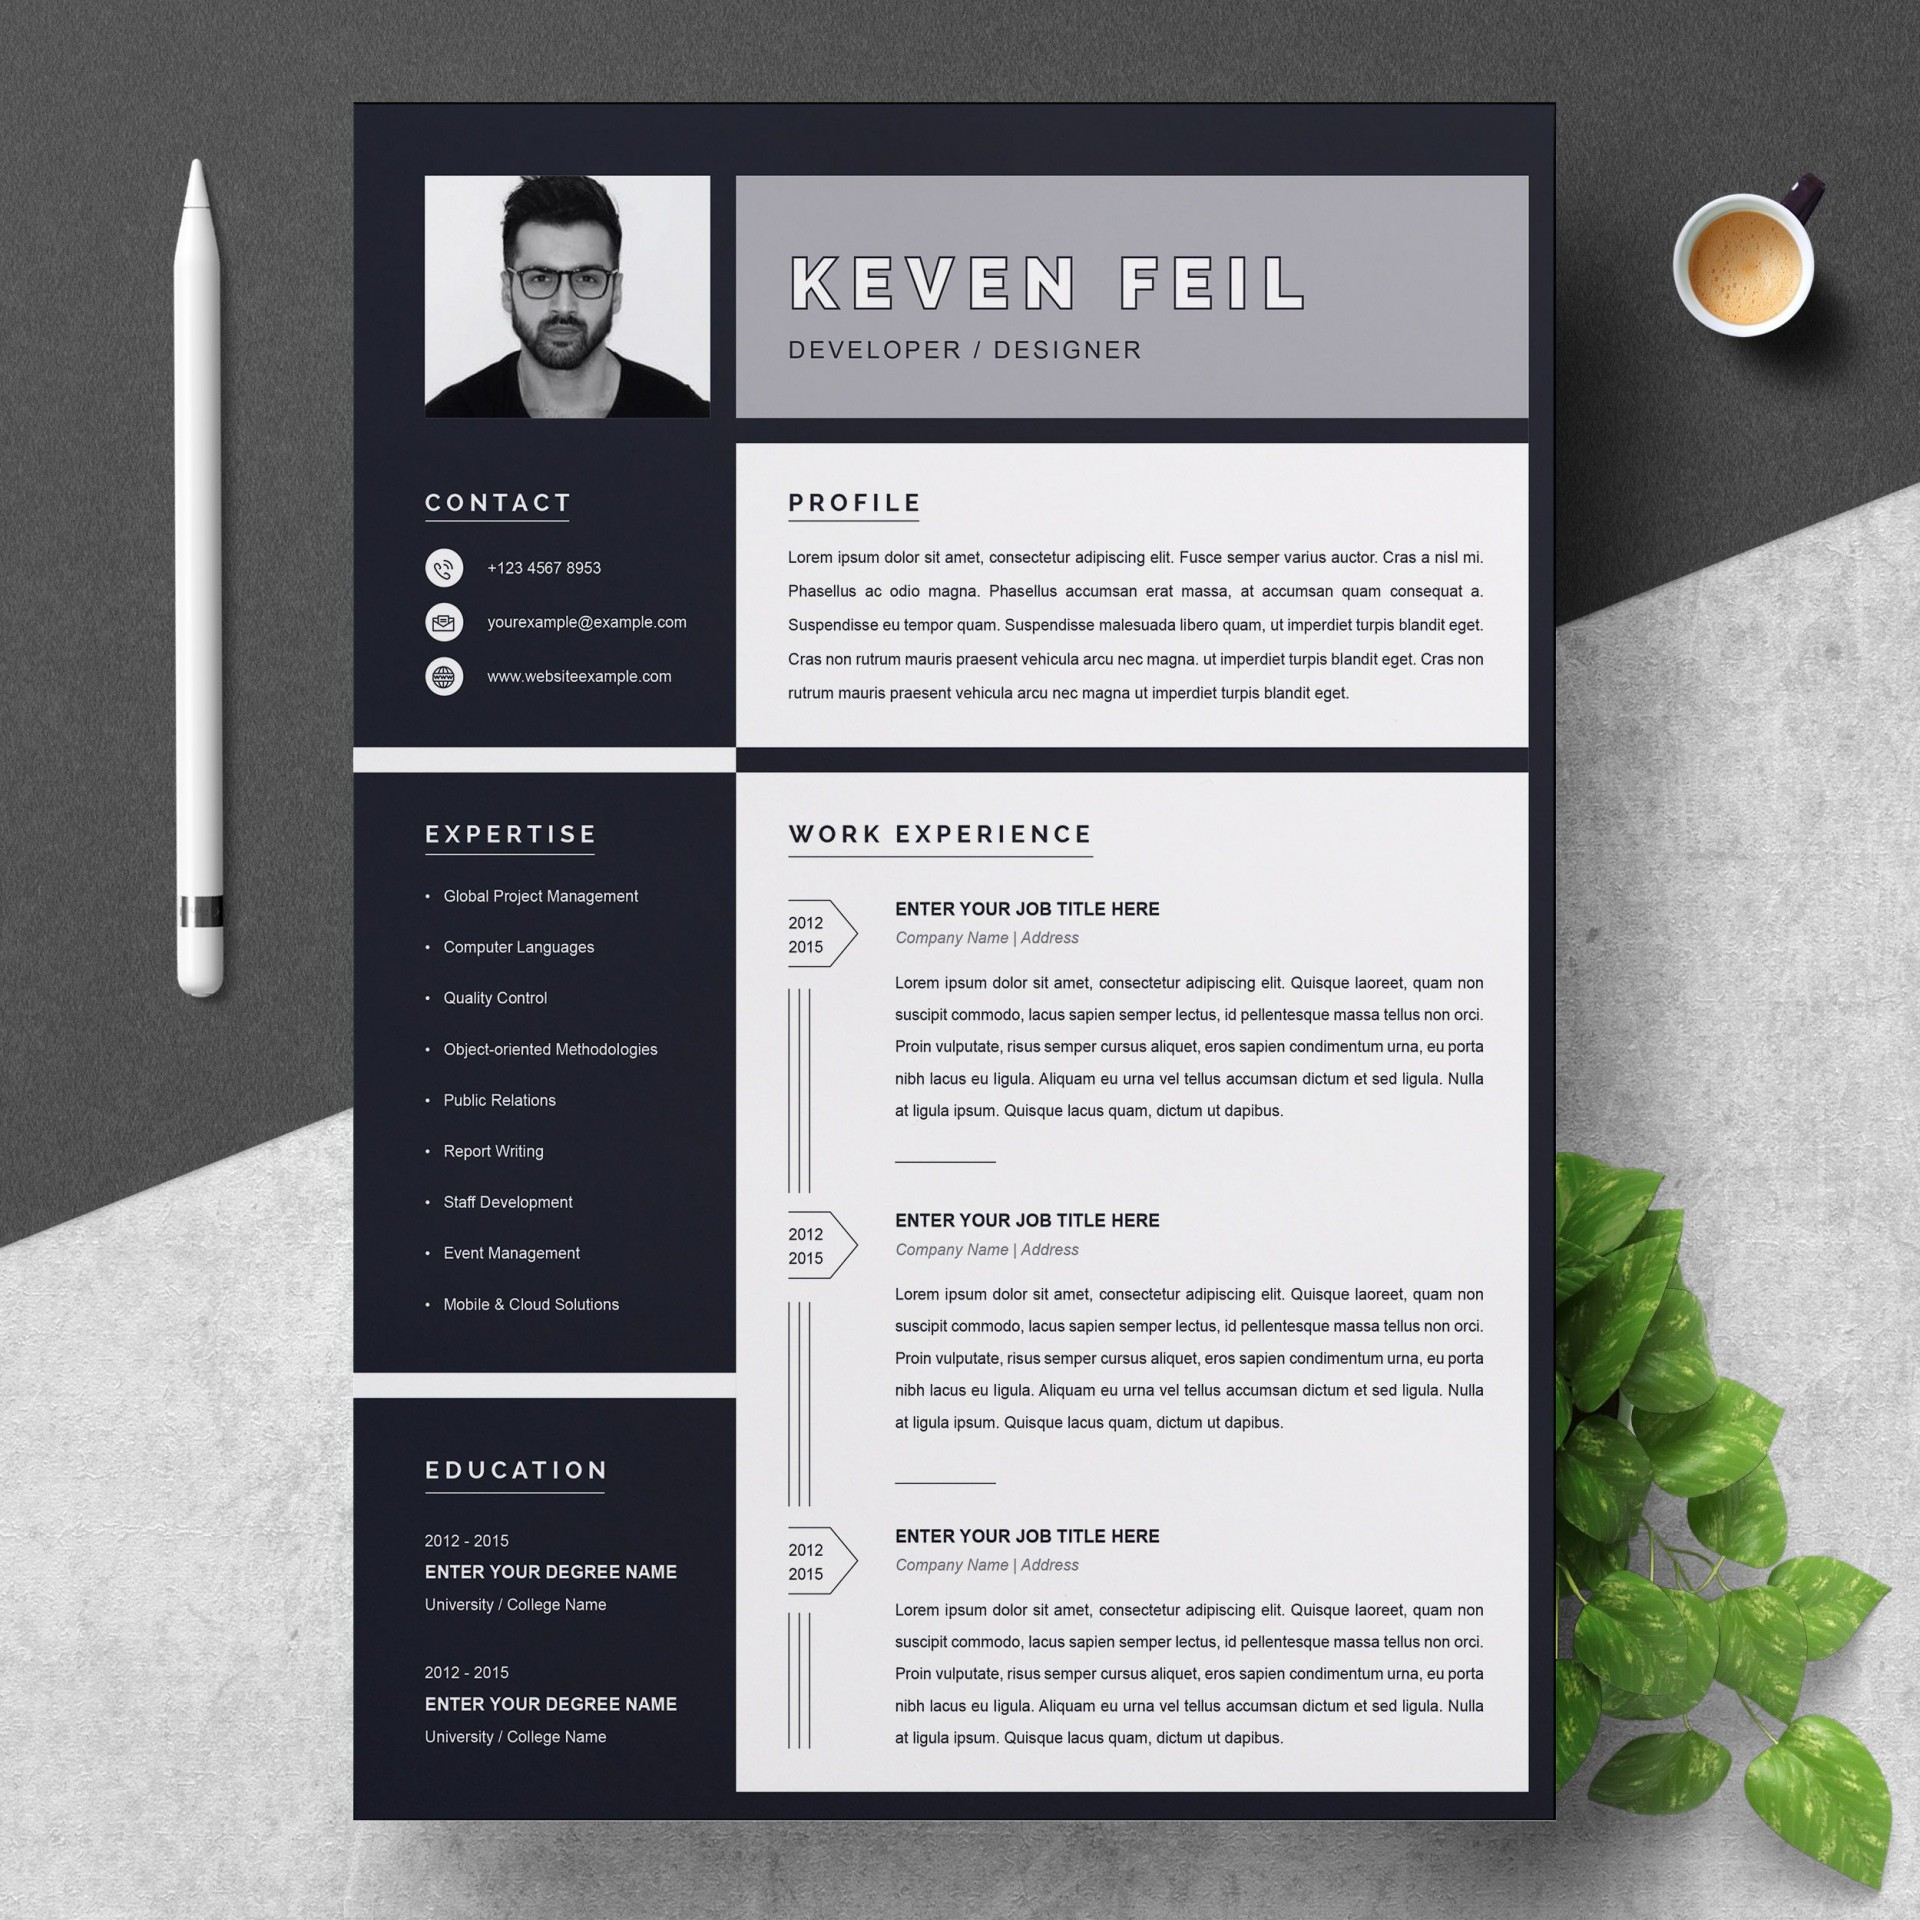 001 Marvelou Download Resume Template Free Mac Highest Clarity  For1920